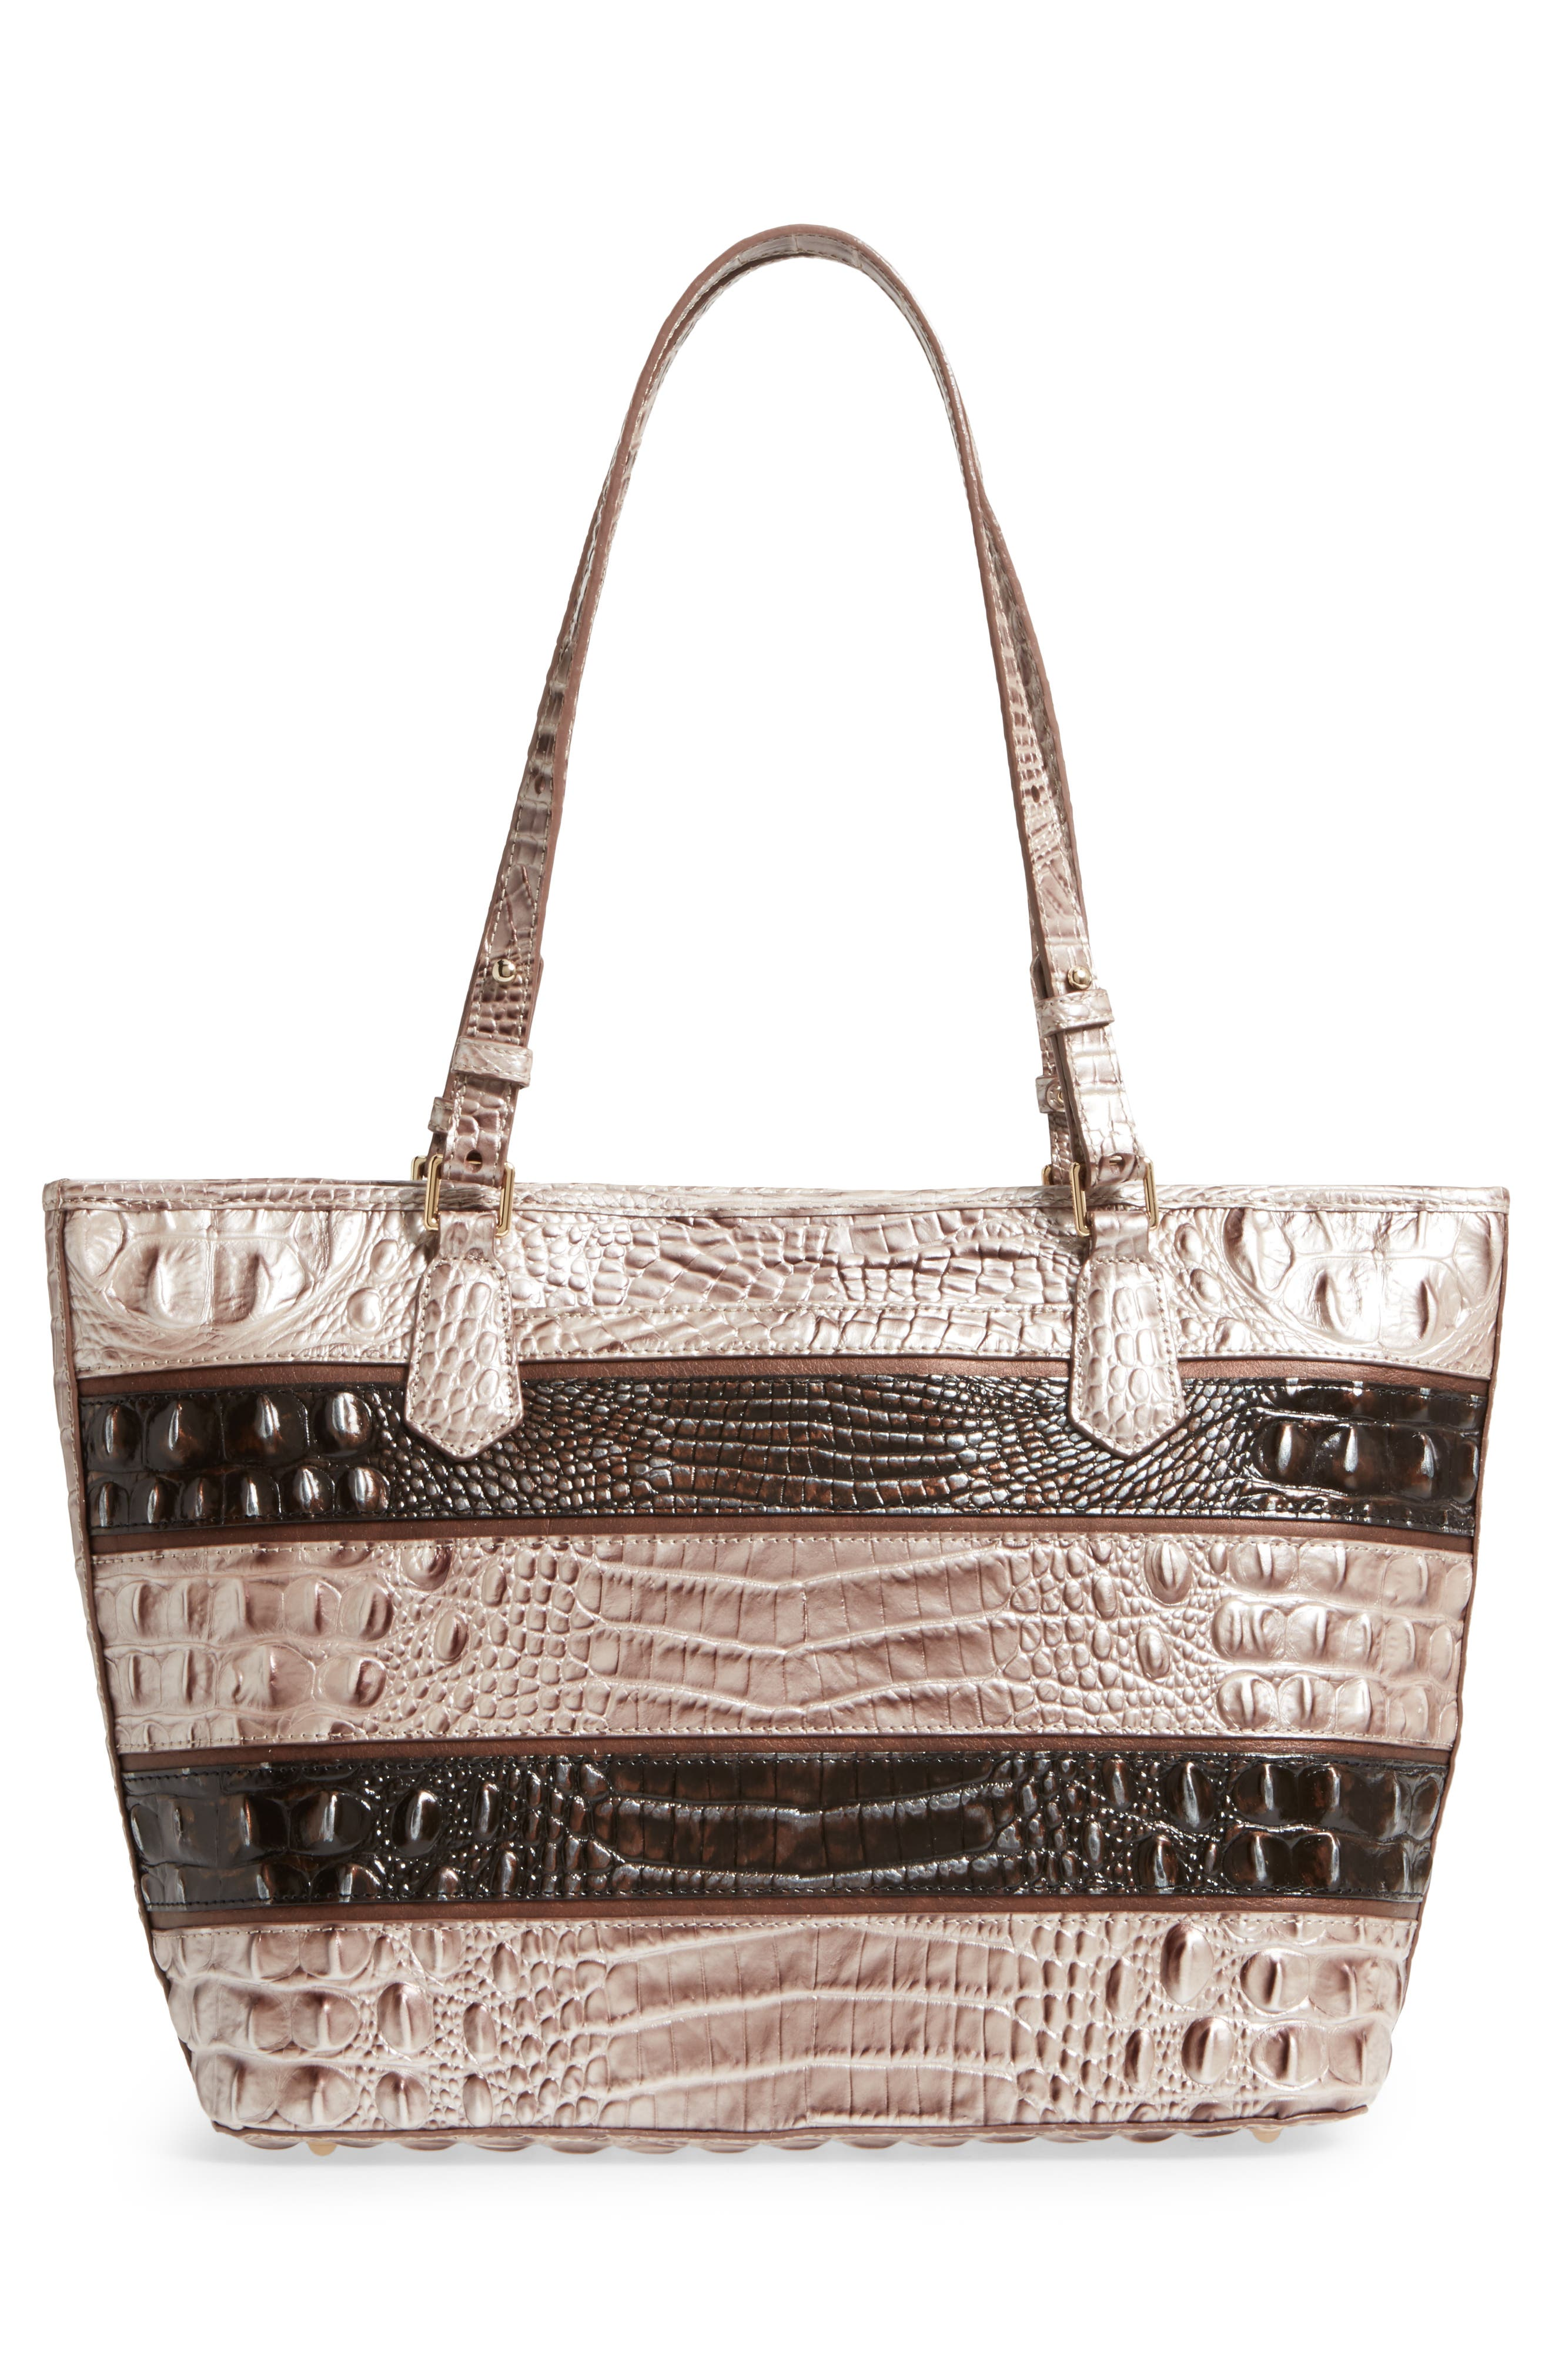 Seine - Medium Asher Leather Tote,                             Alternate thumbnail 3, color,                             210